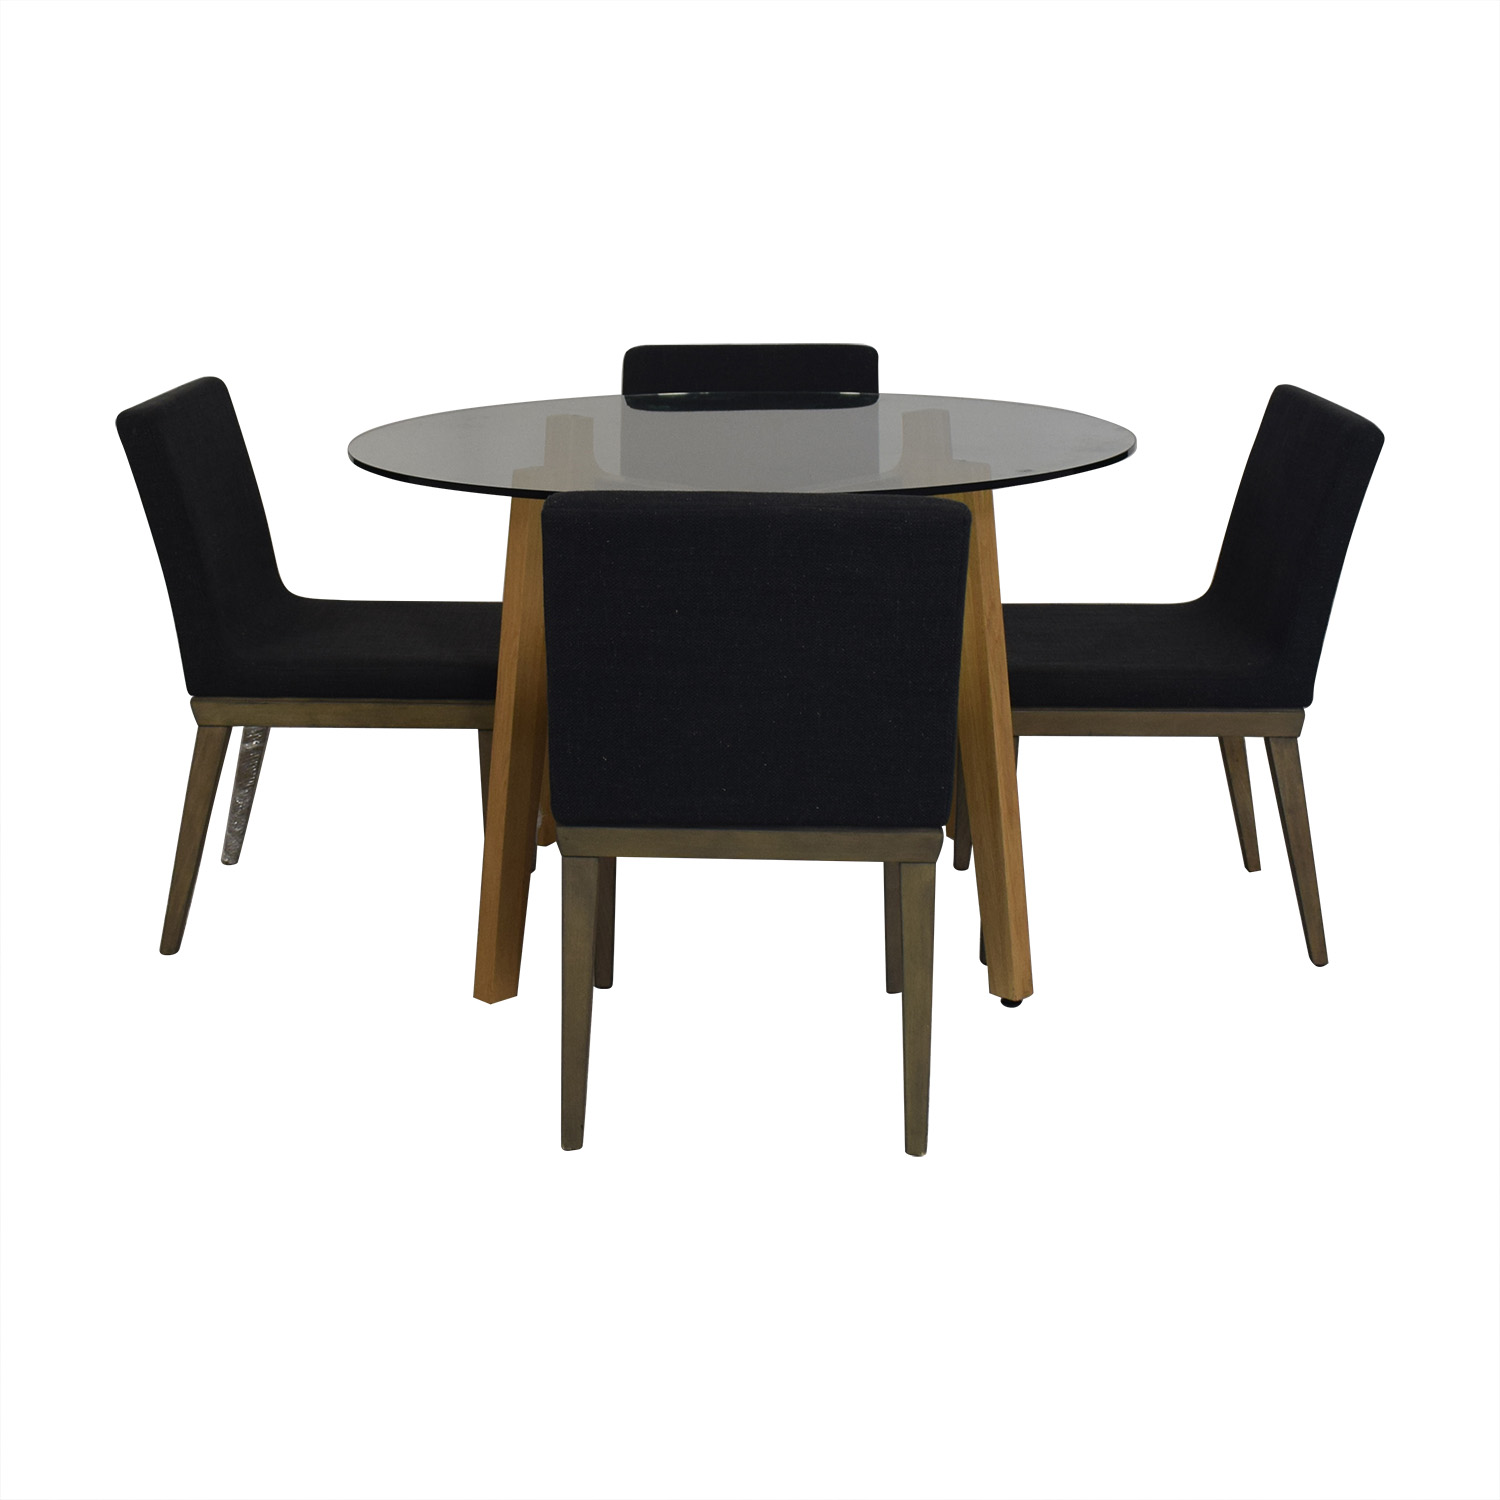 CB2 CB2 Glass Dining Room Table with Four Chairs for sale